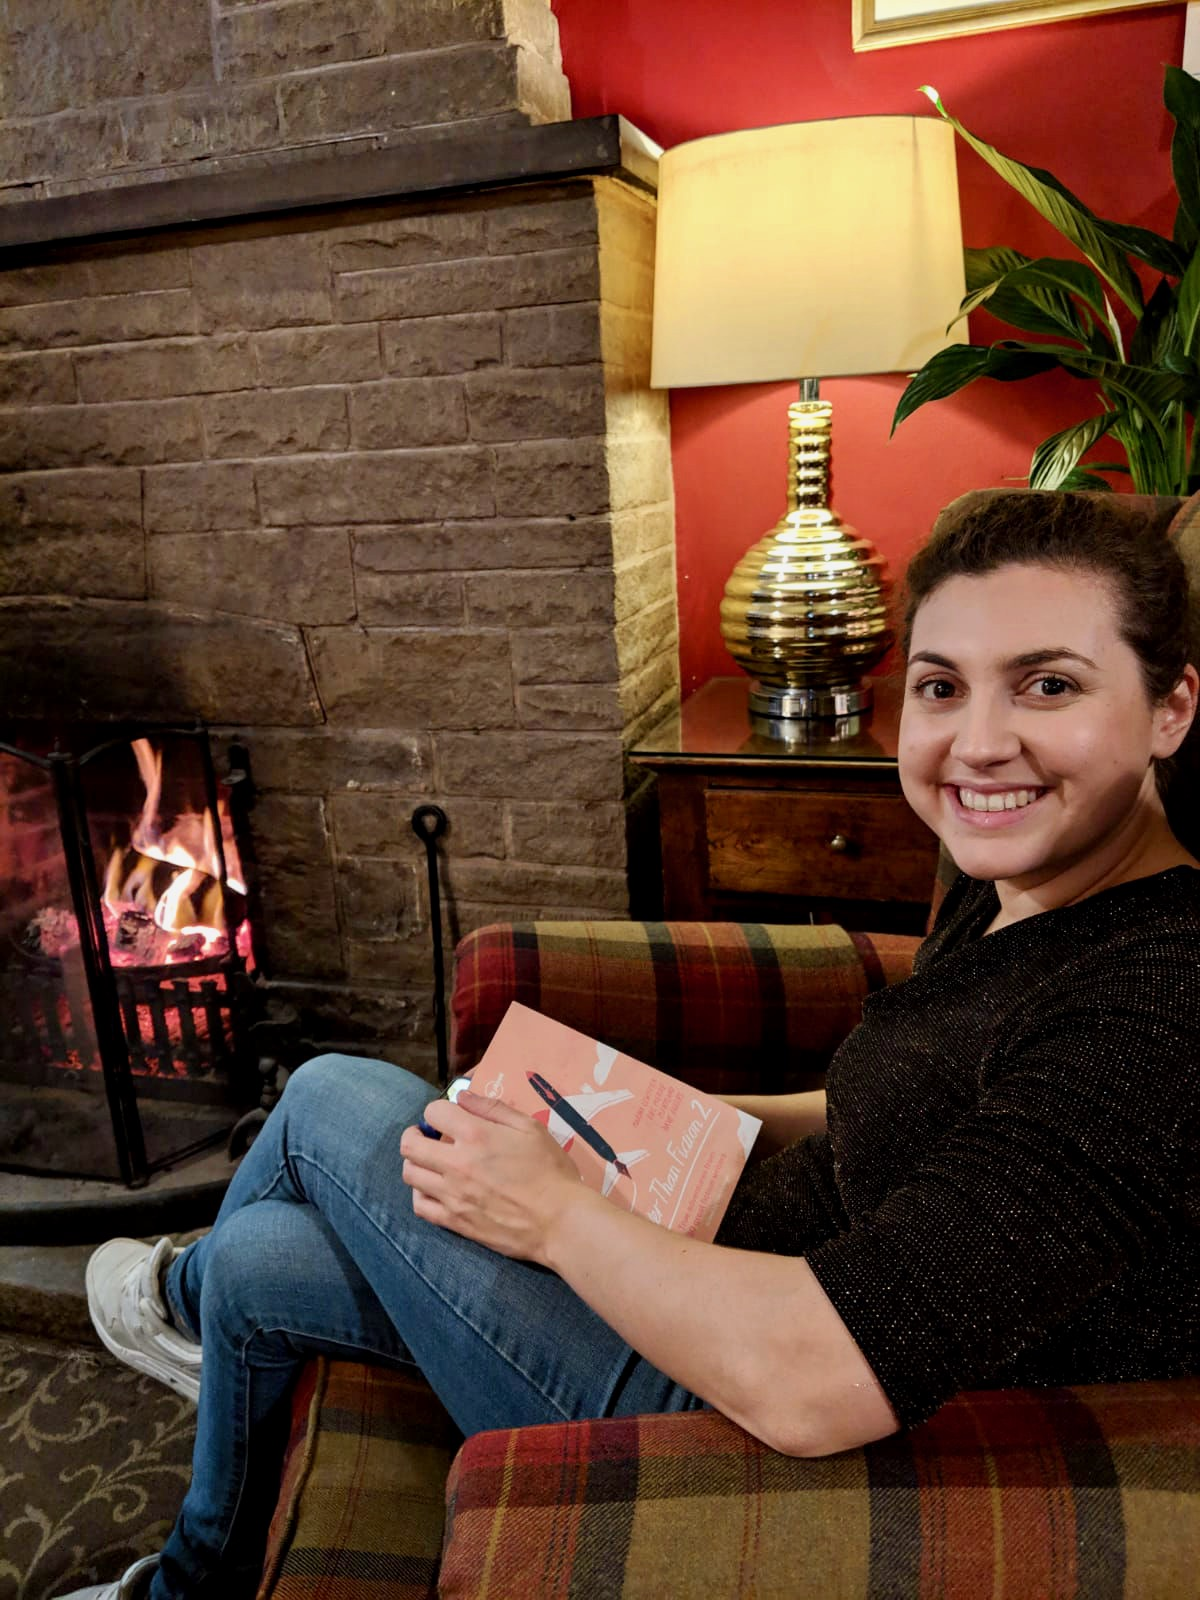 Nell sat in a chequered armchair next to a log fire, holding a book in her lap and smiling at the camera